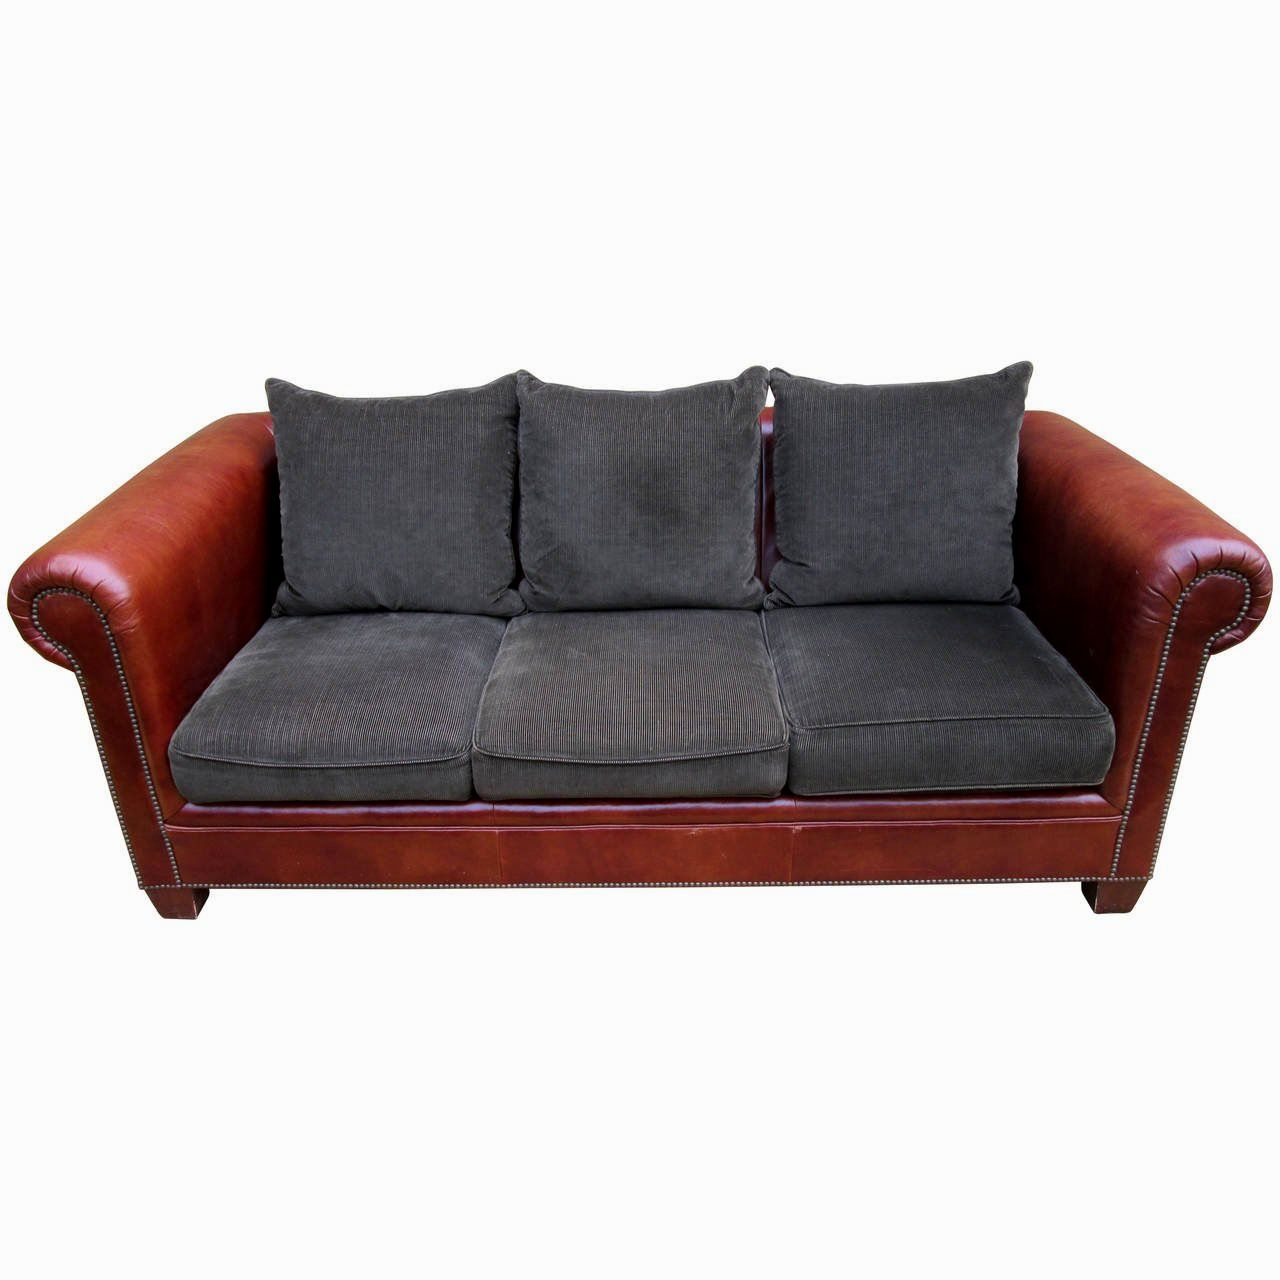 beautiful leather tufted sofa inspiration-Wonderful Leather Tufted sofa Pattern